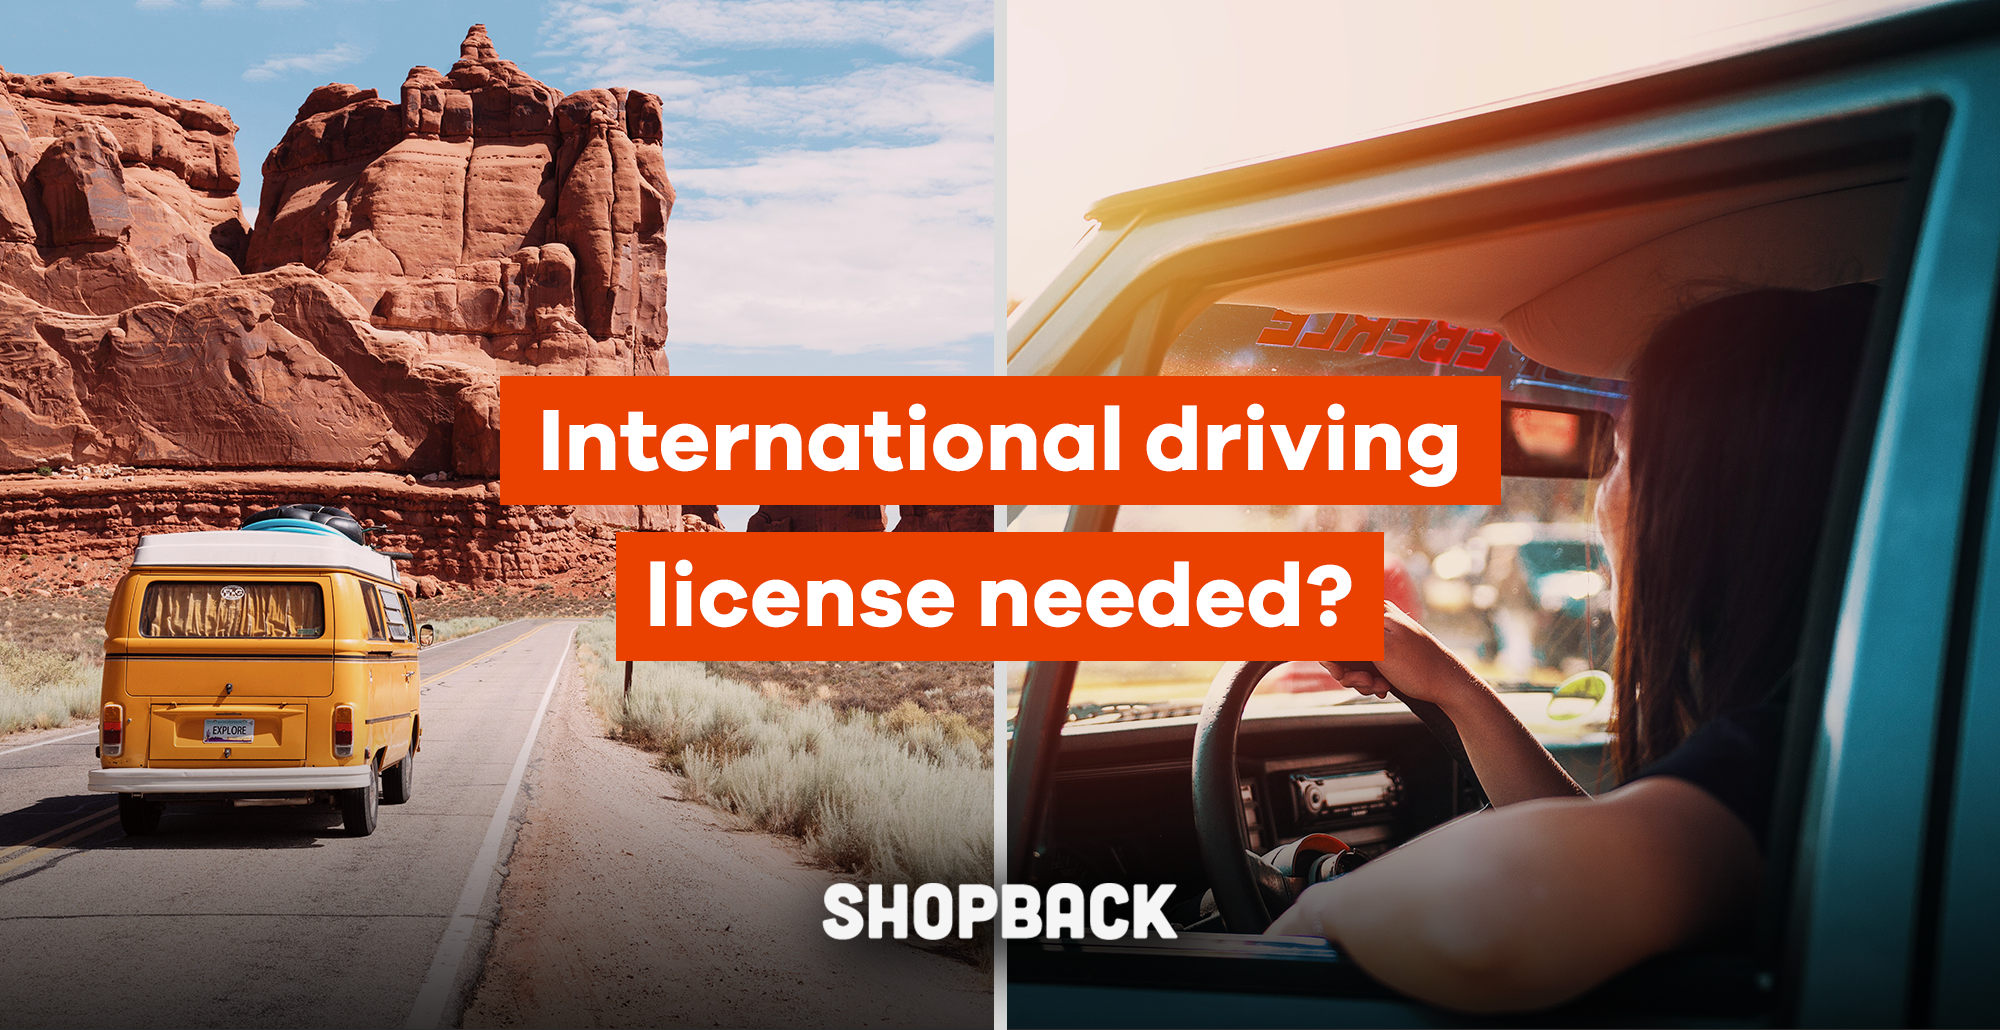 Do You Need a Driving License There? Everything Singaporeans Need to Know Before Going on a Road Trip Abroad